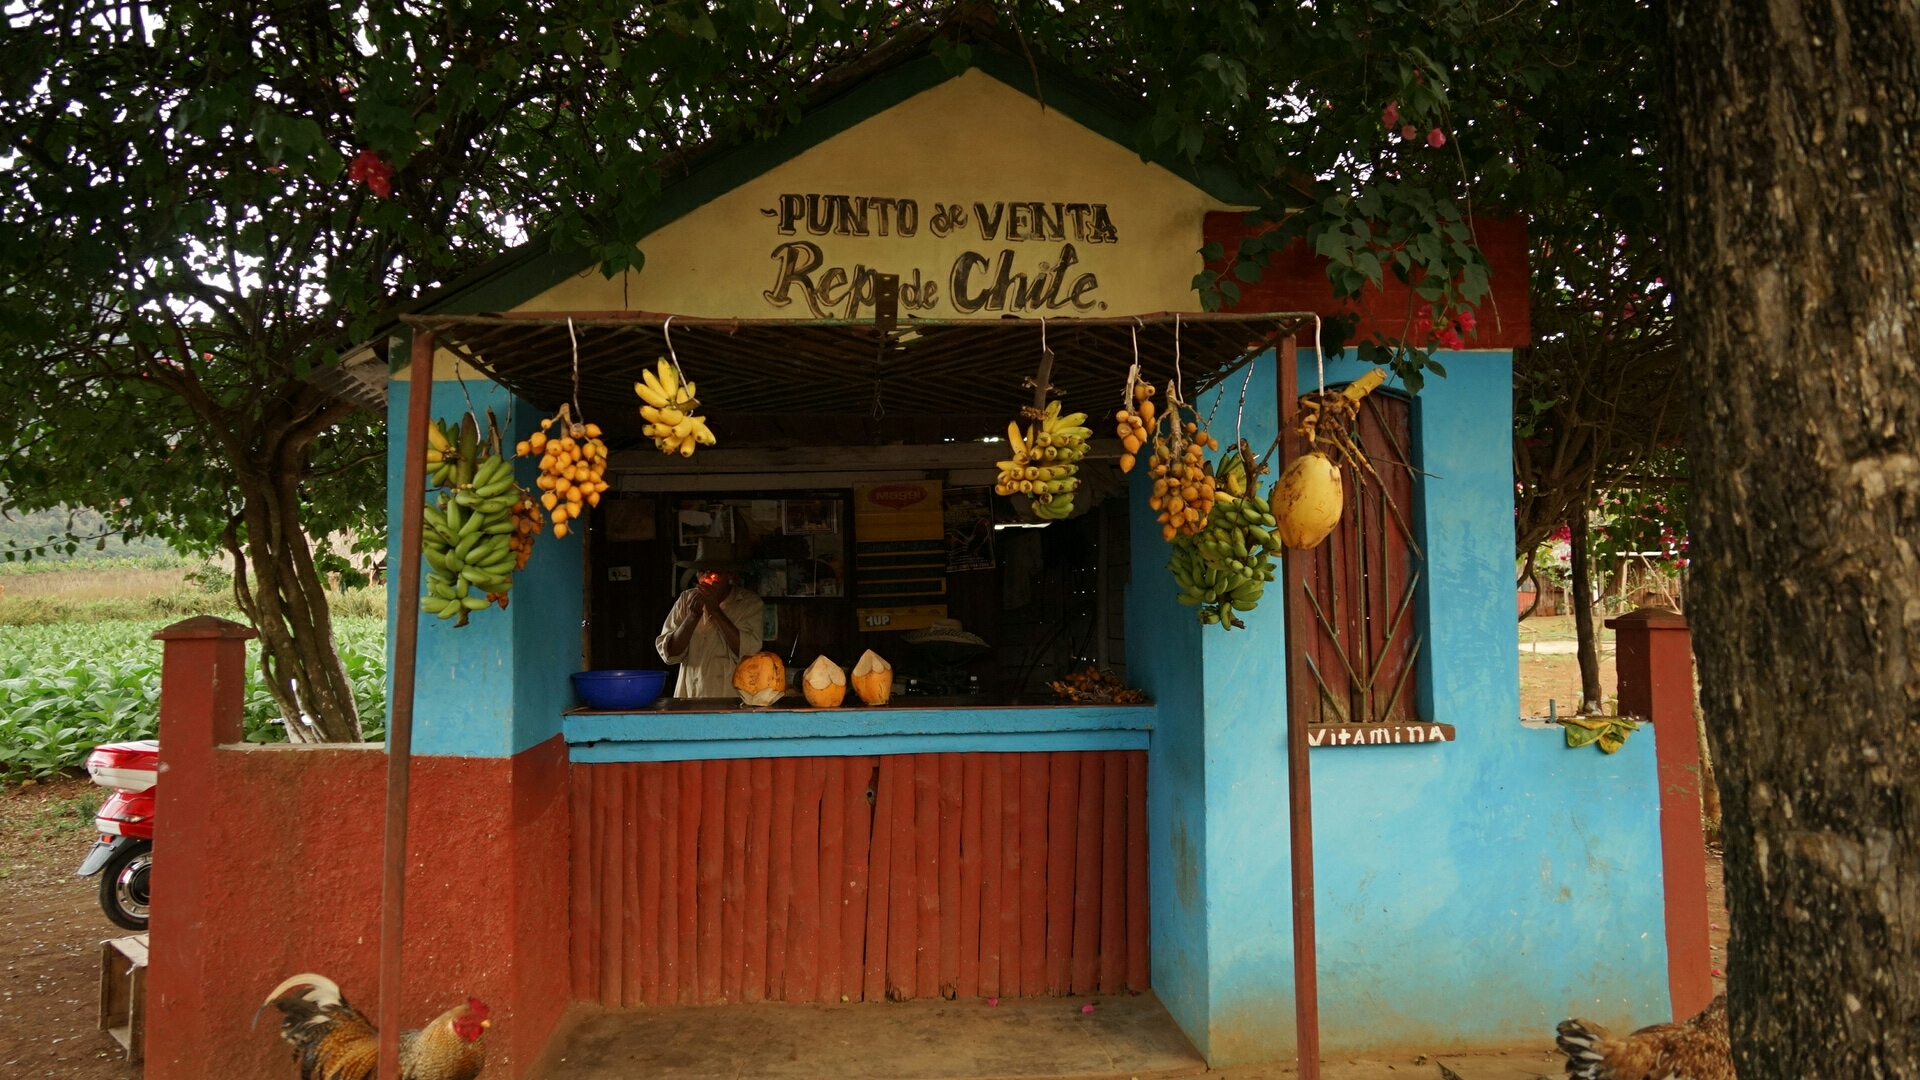 A fruit stand in the village, where I purchased a bunch of tiny bananas for only 1CUC.